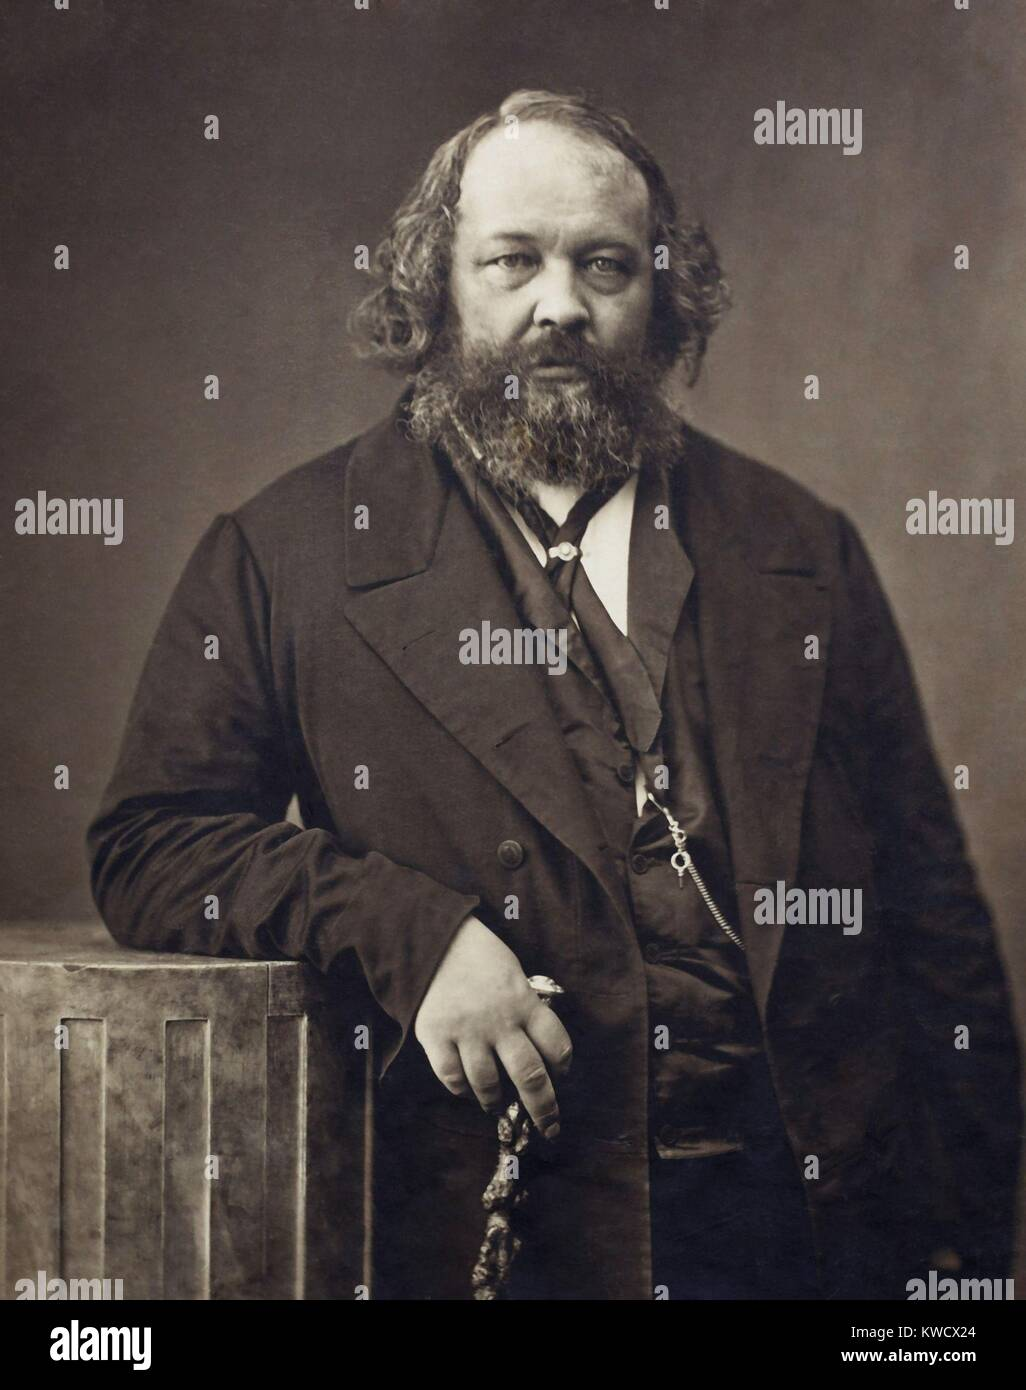 Russian born Mikhail Bakunin, was an exponent of revolutionary anarchism in 1860-70s. He was an associate of Marx - Stock Image